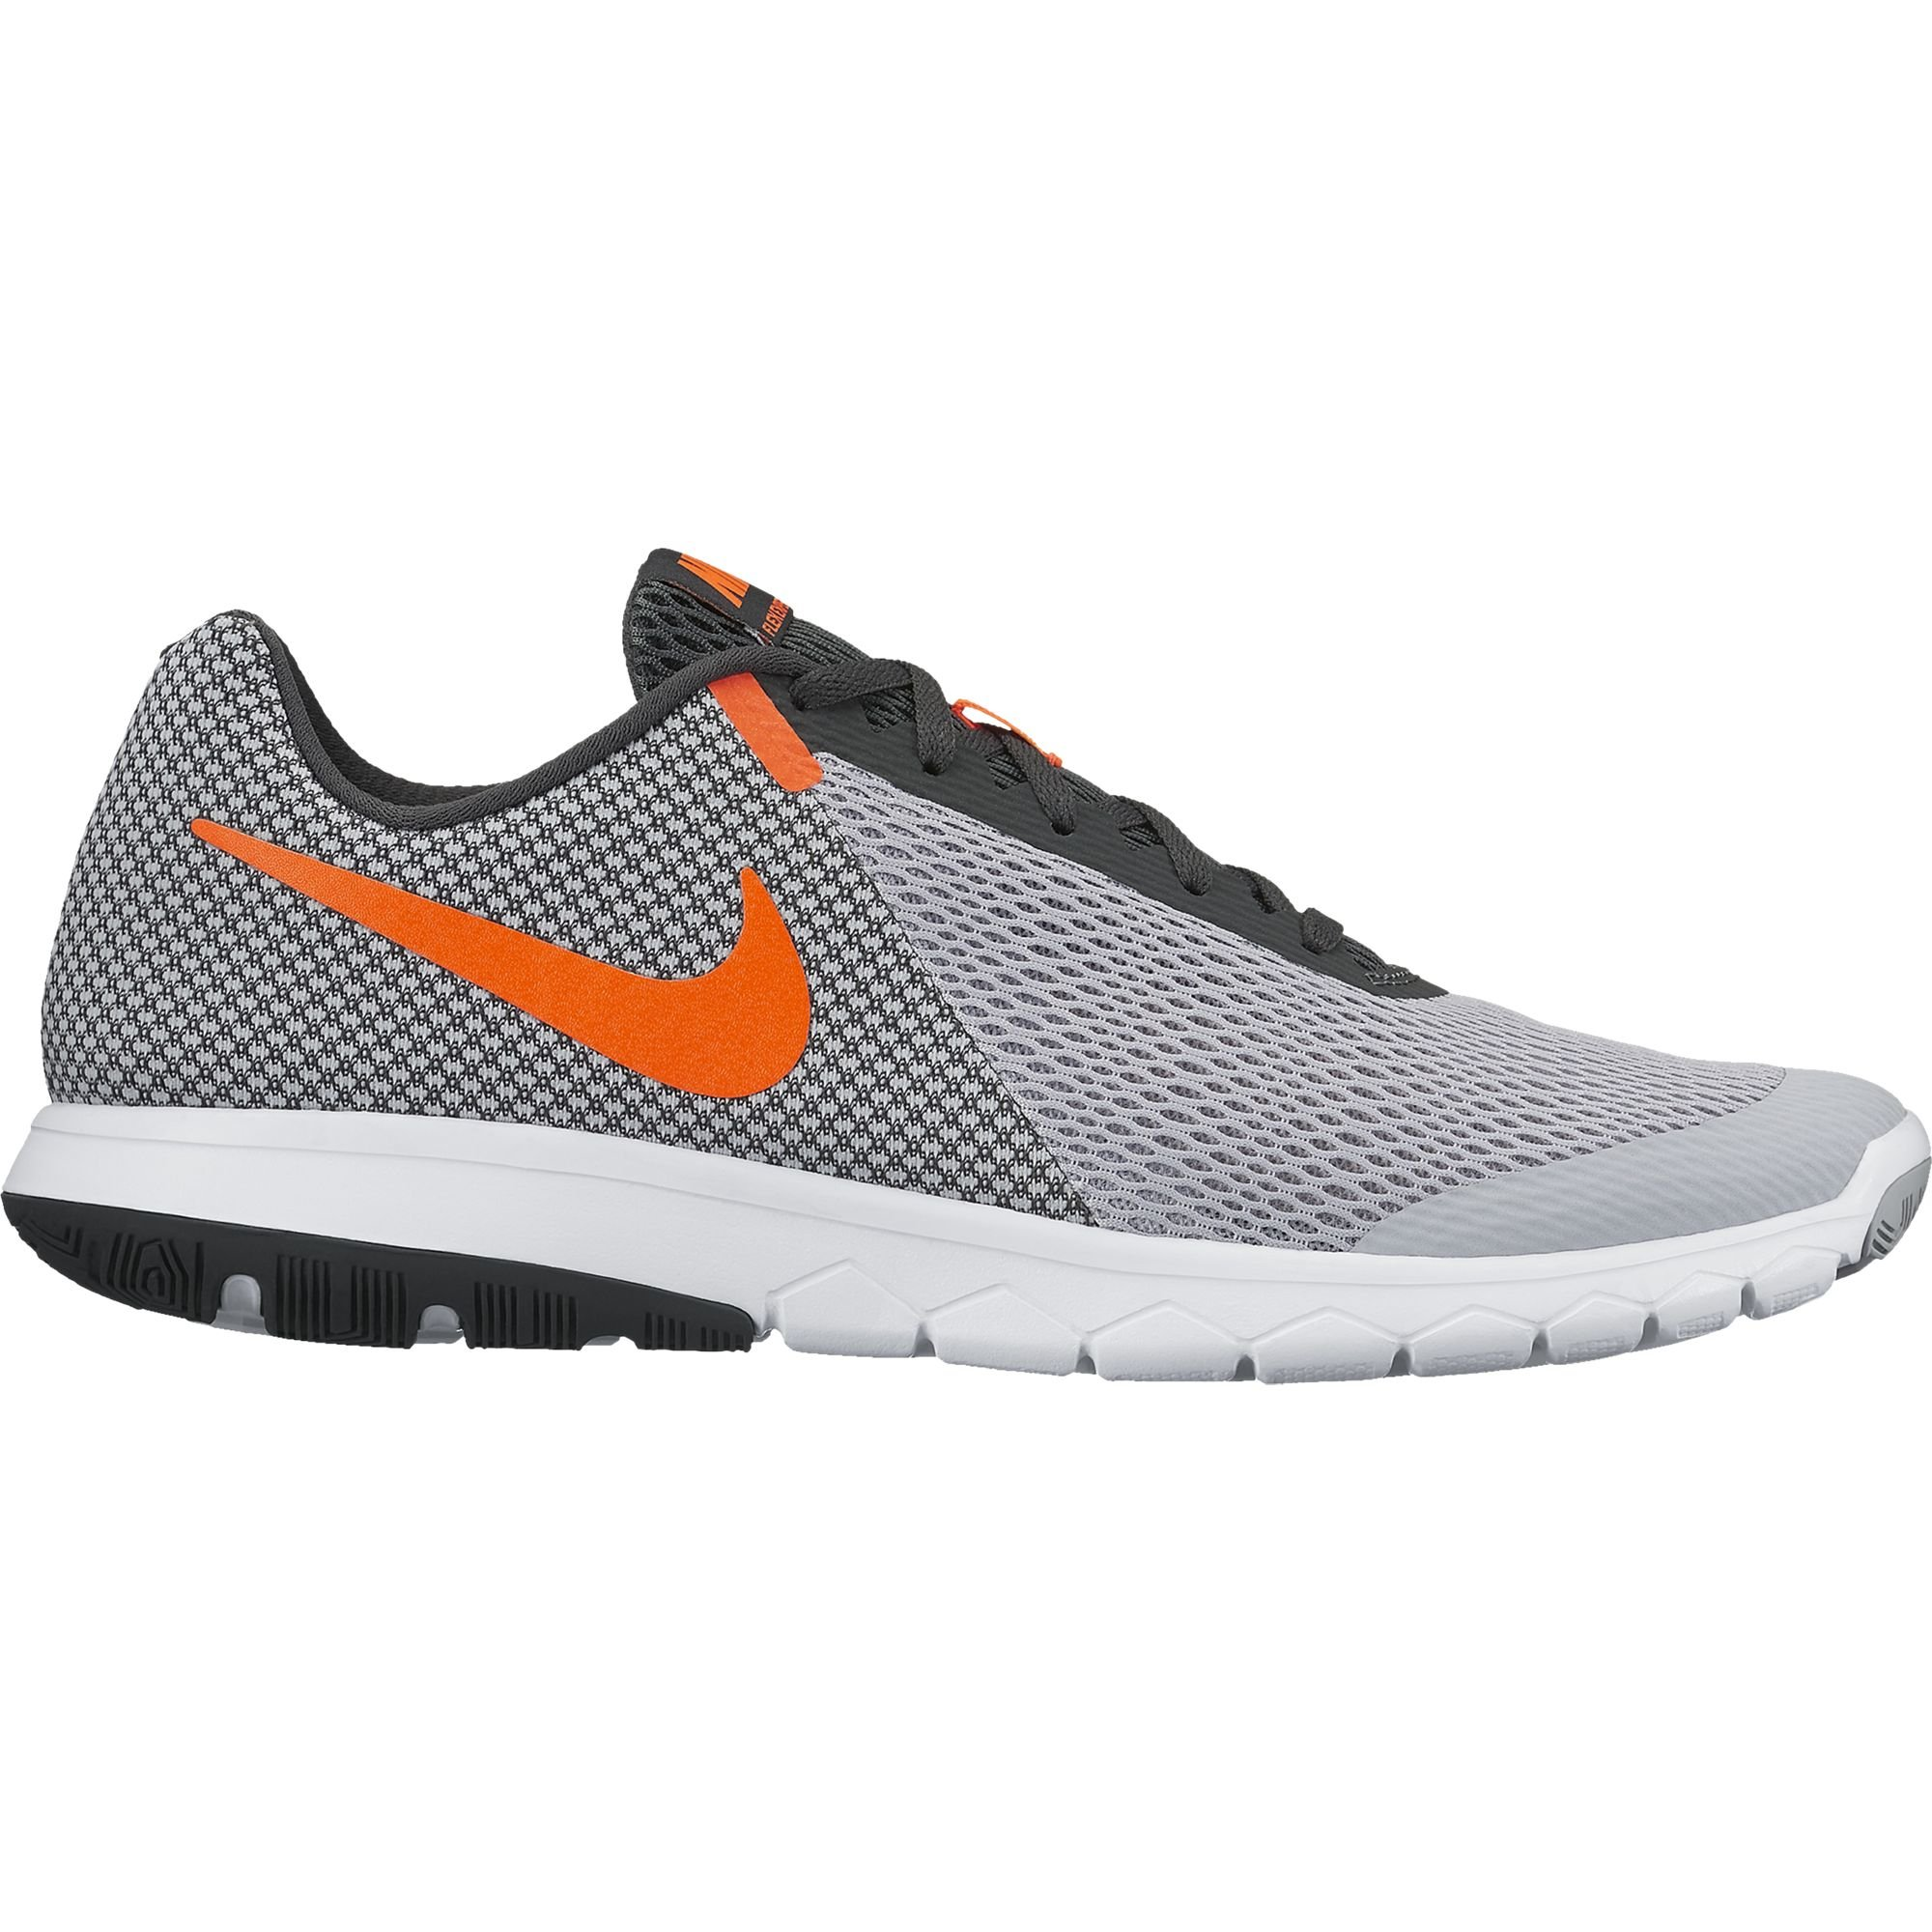 5923d955c26e Galleon - Nike Flex Experience RN 6 Mens Running Shoes Wolf Grey Total  Crimson-Anthracite-White Size 9